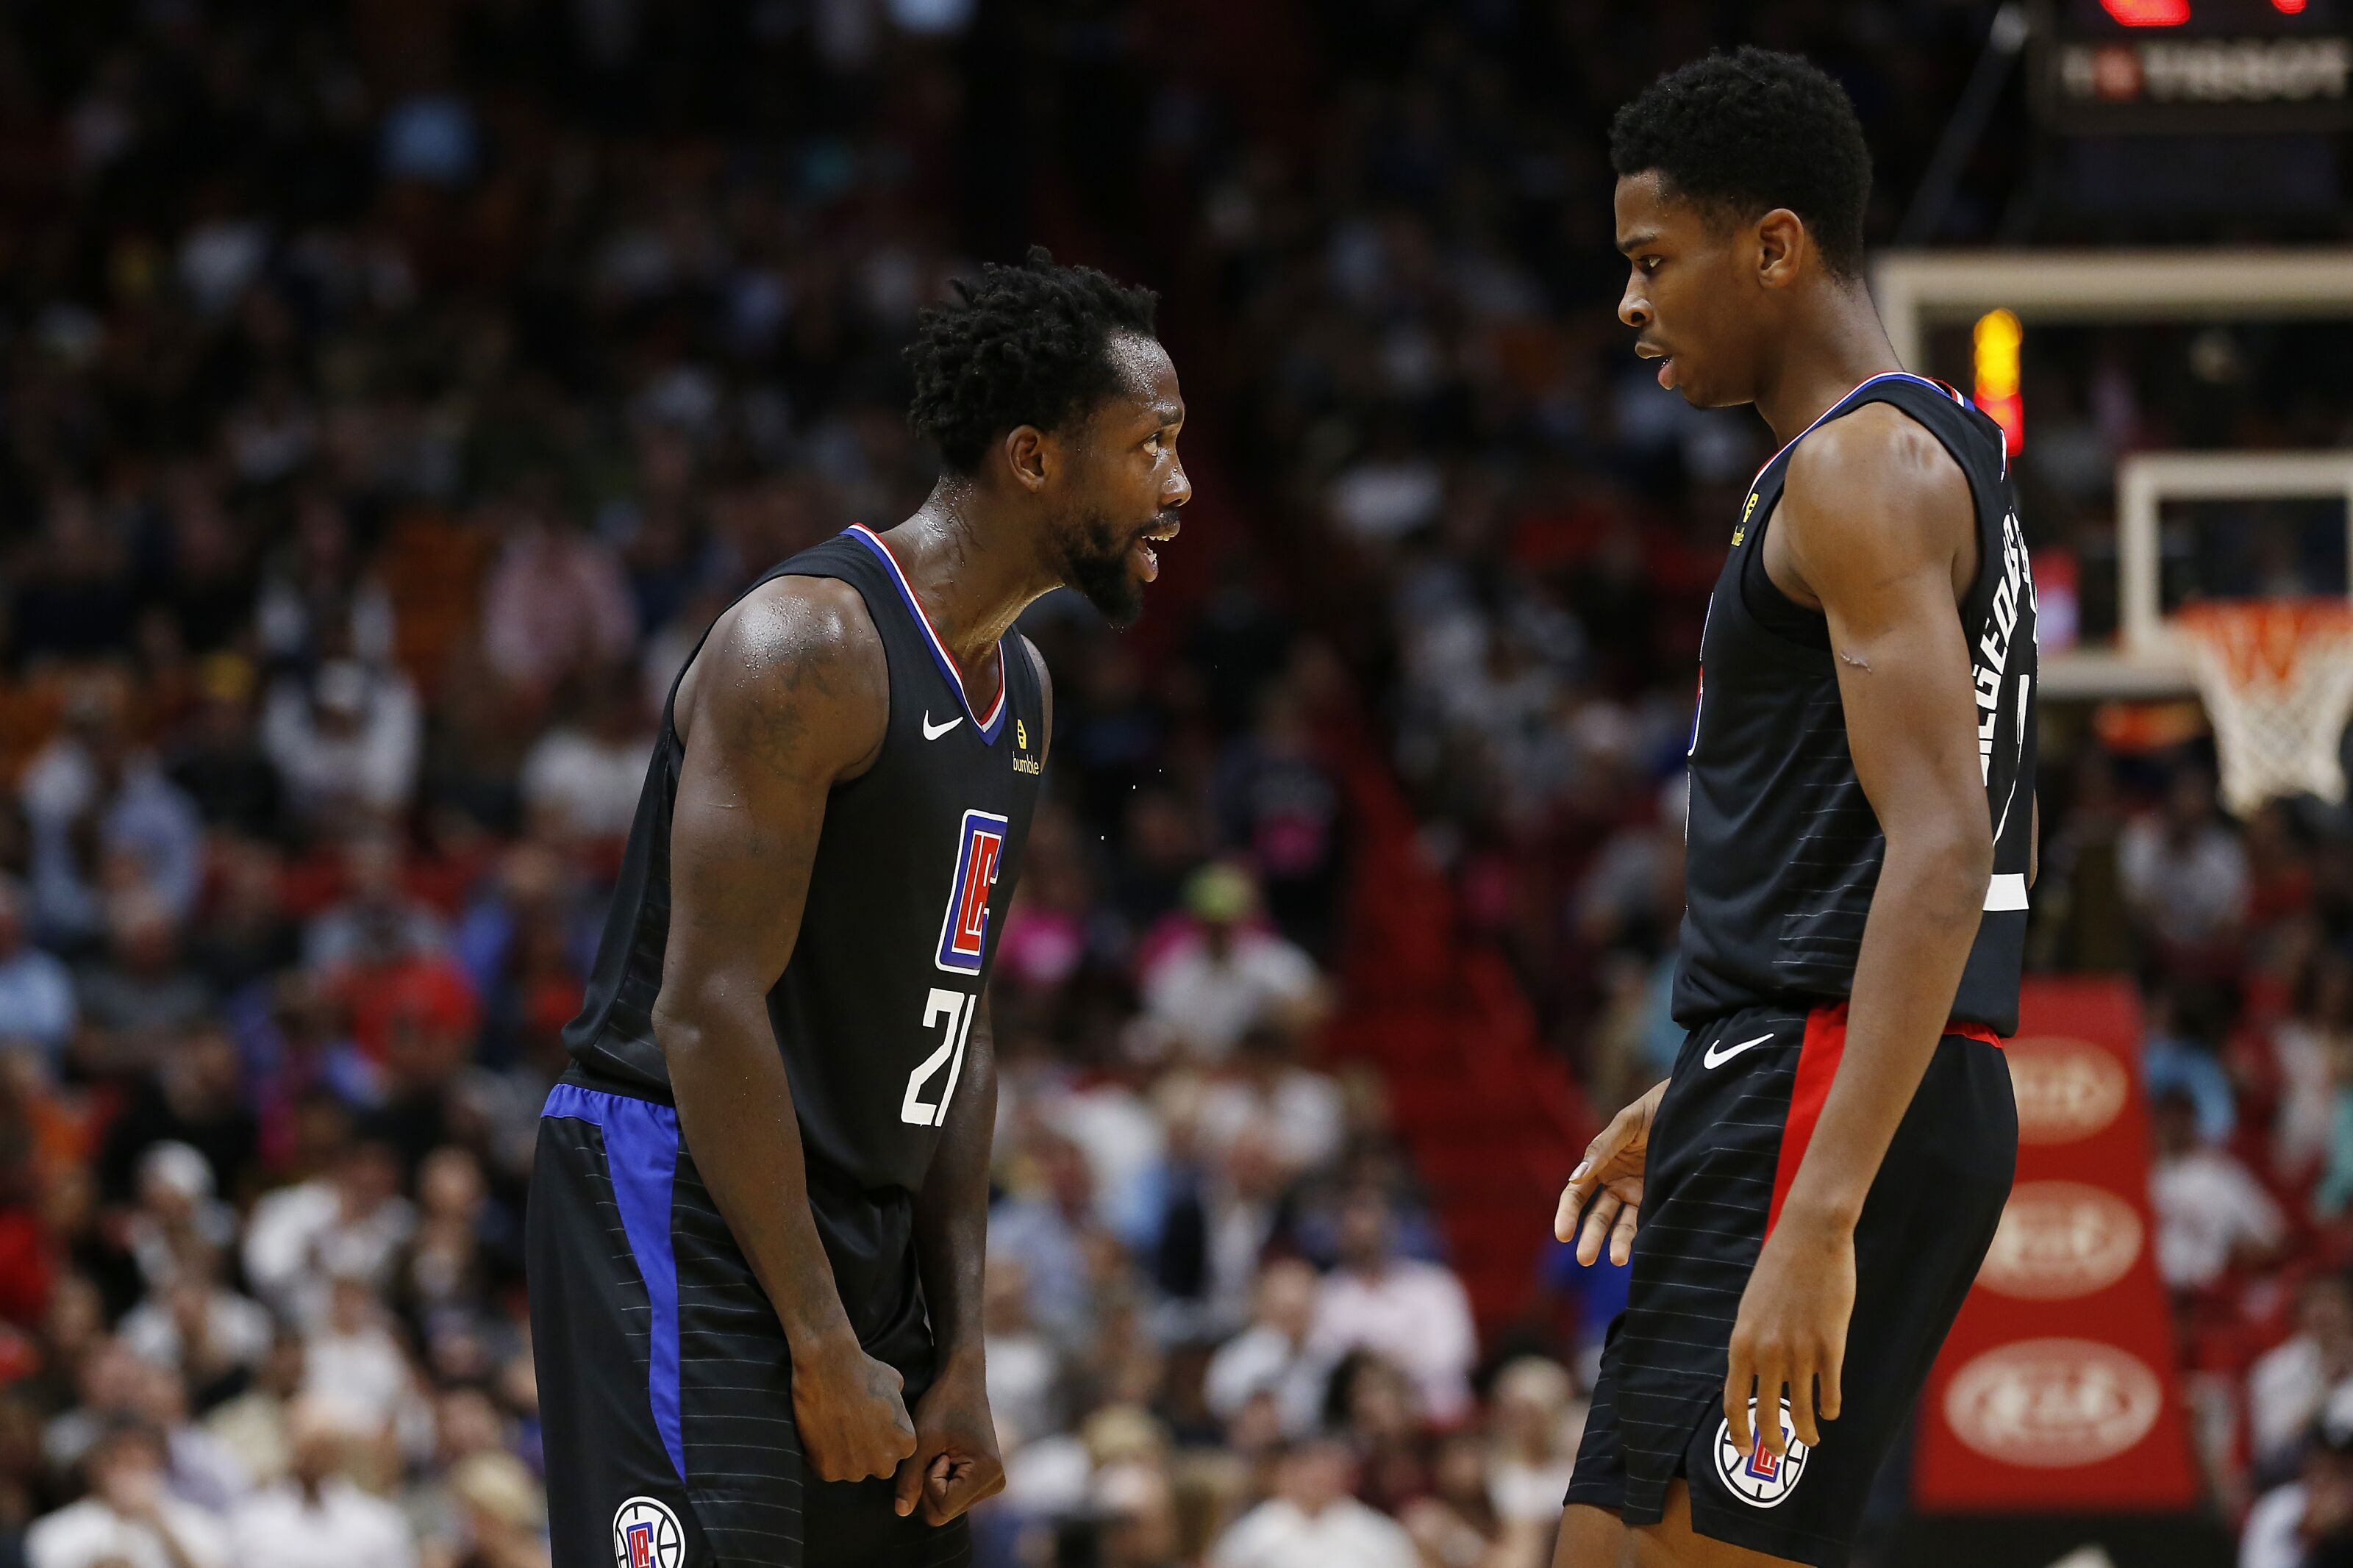 LA Clippers: Patrick Beverley advocates for Shai Gilgeous-Alexander as ROTY